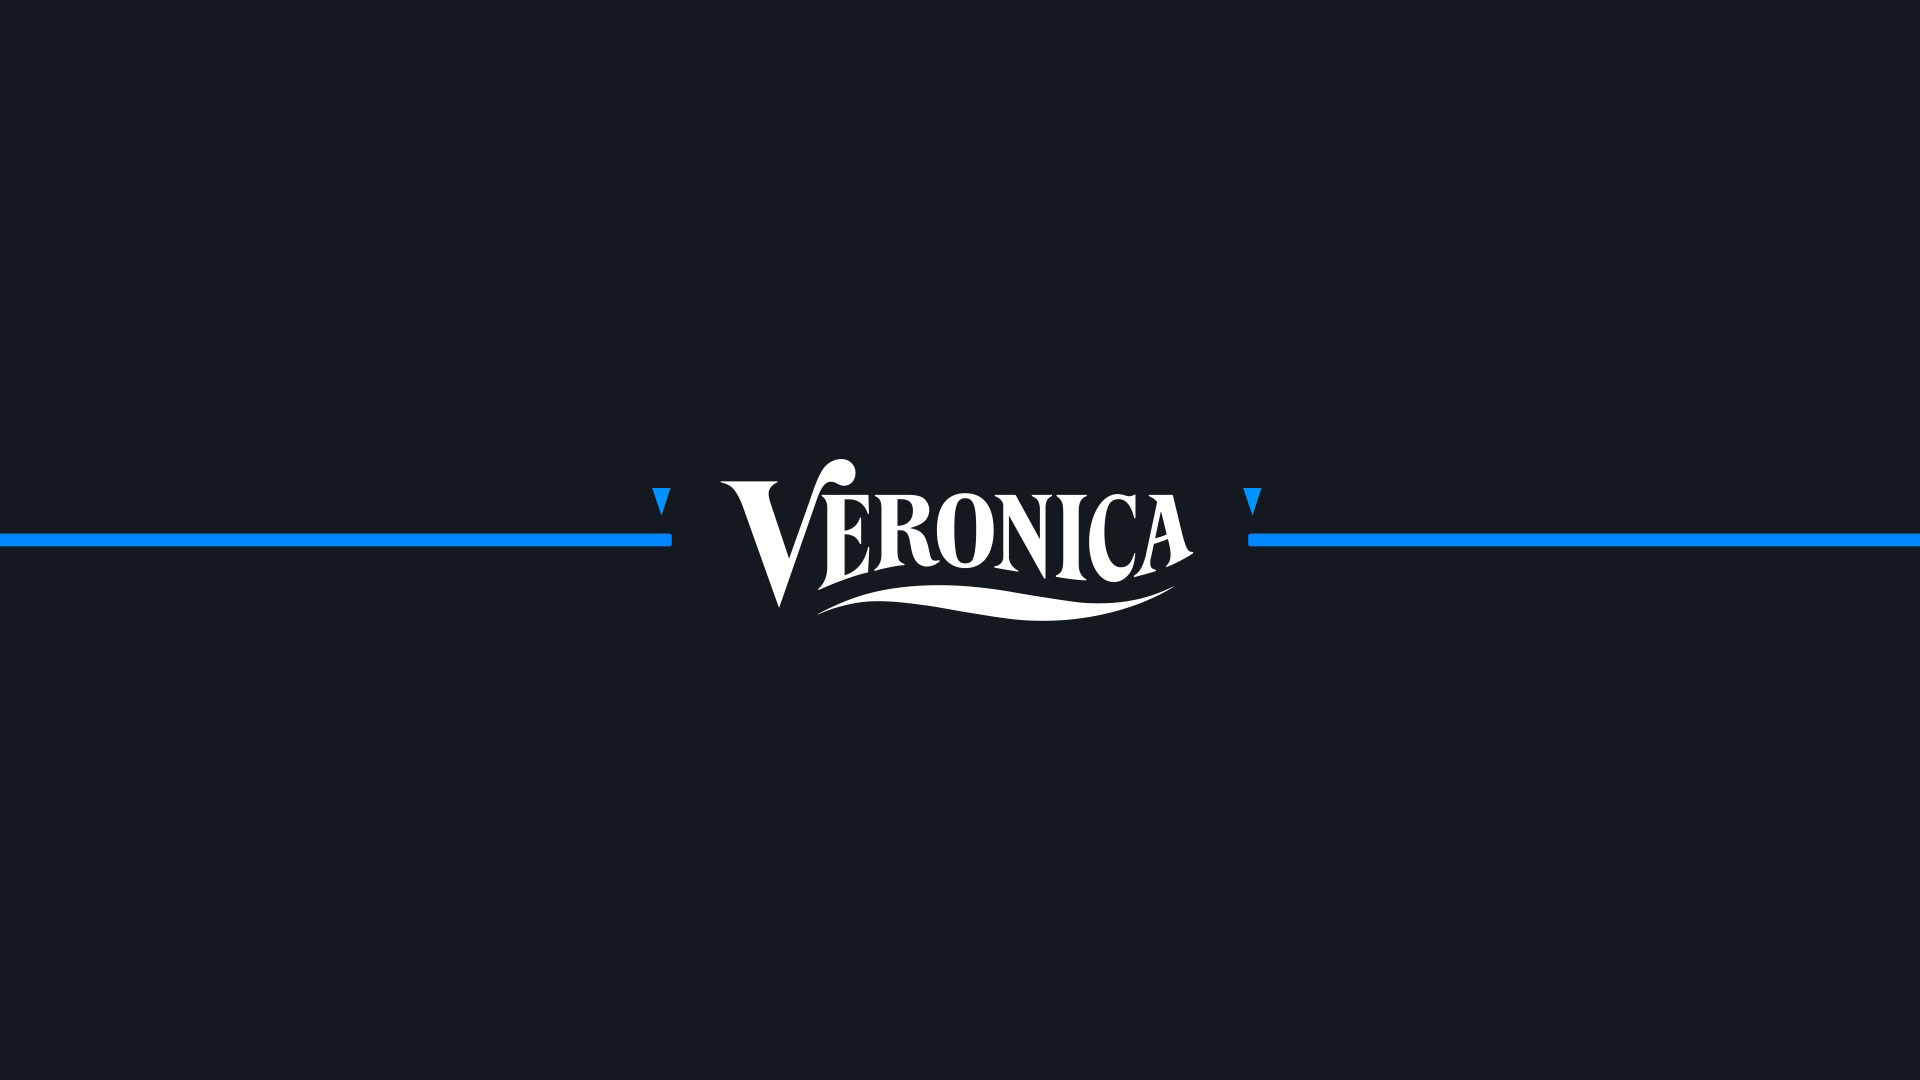 Veronica Wave Logo